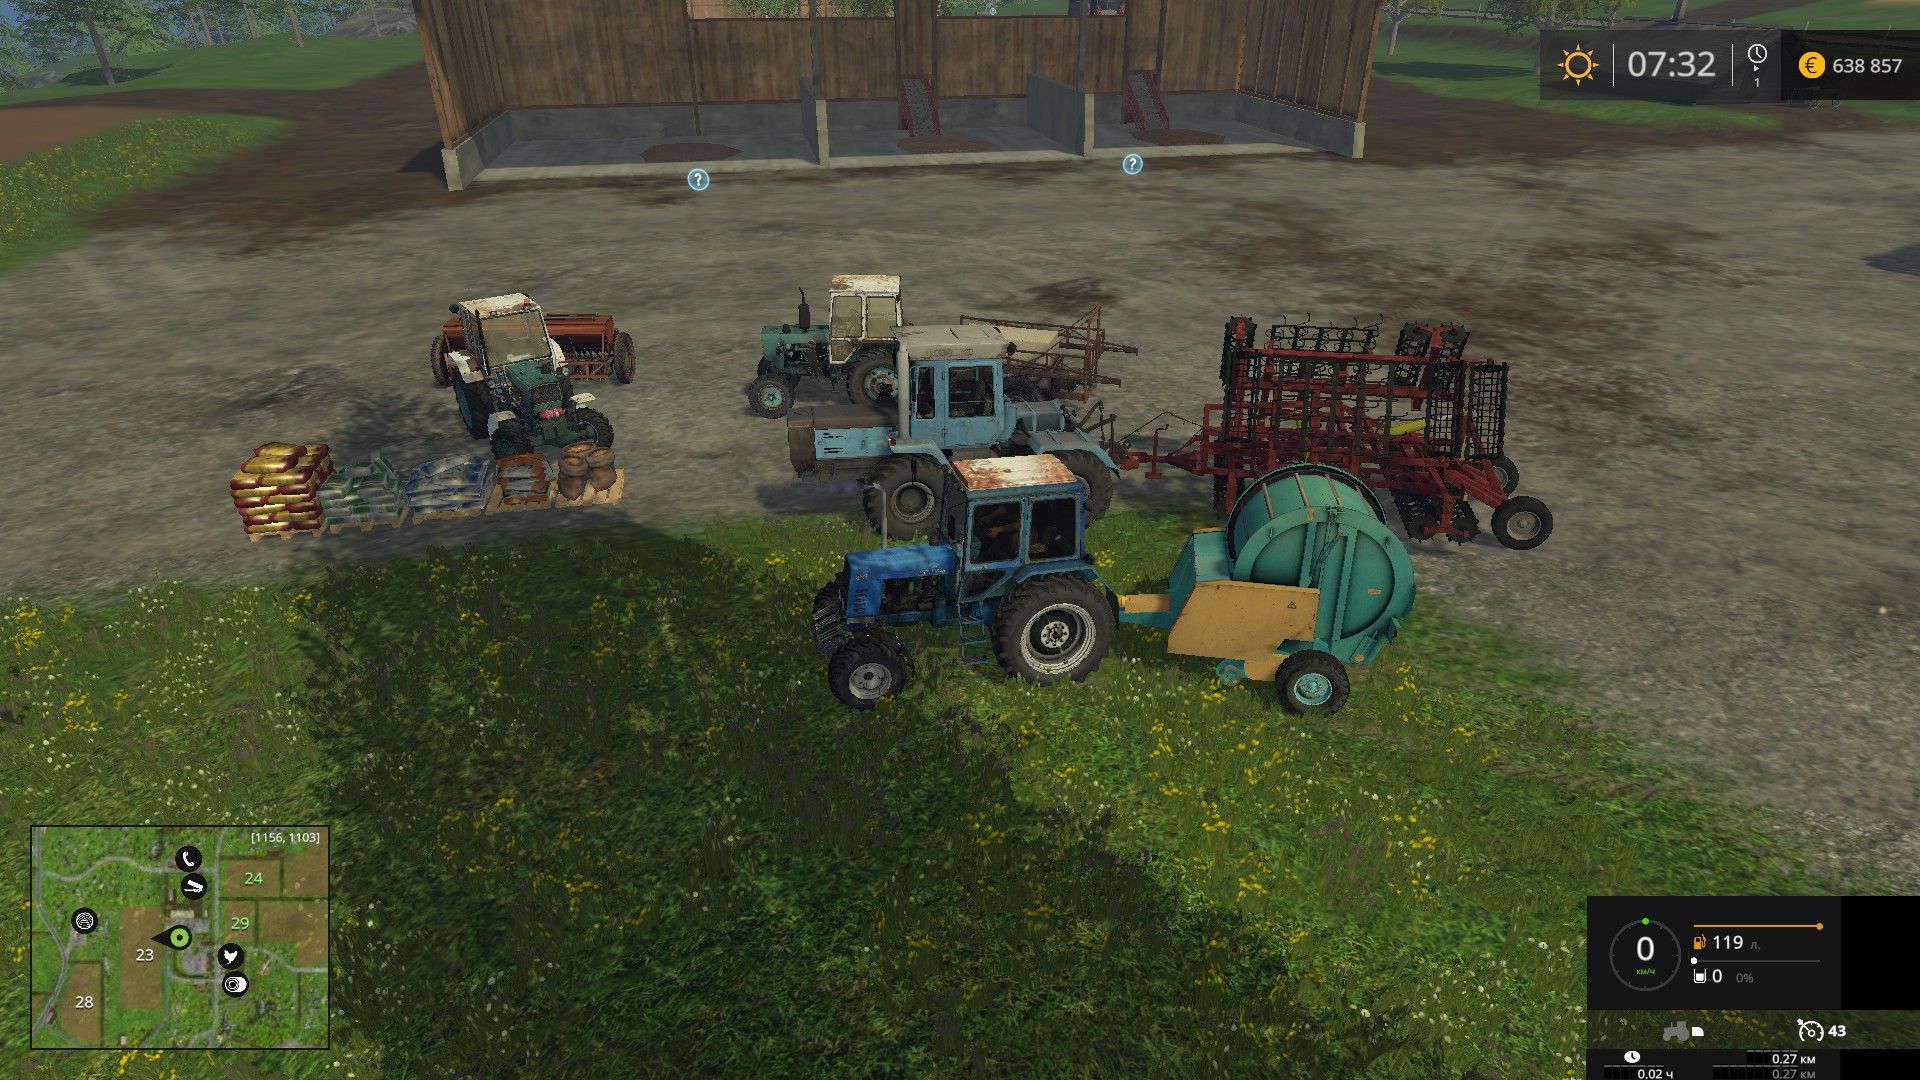 FS15 optimal pack of mods for the game - Farming simulator